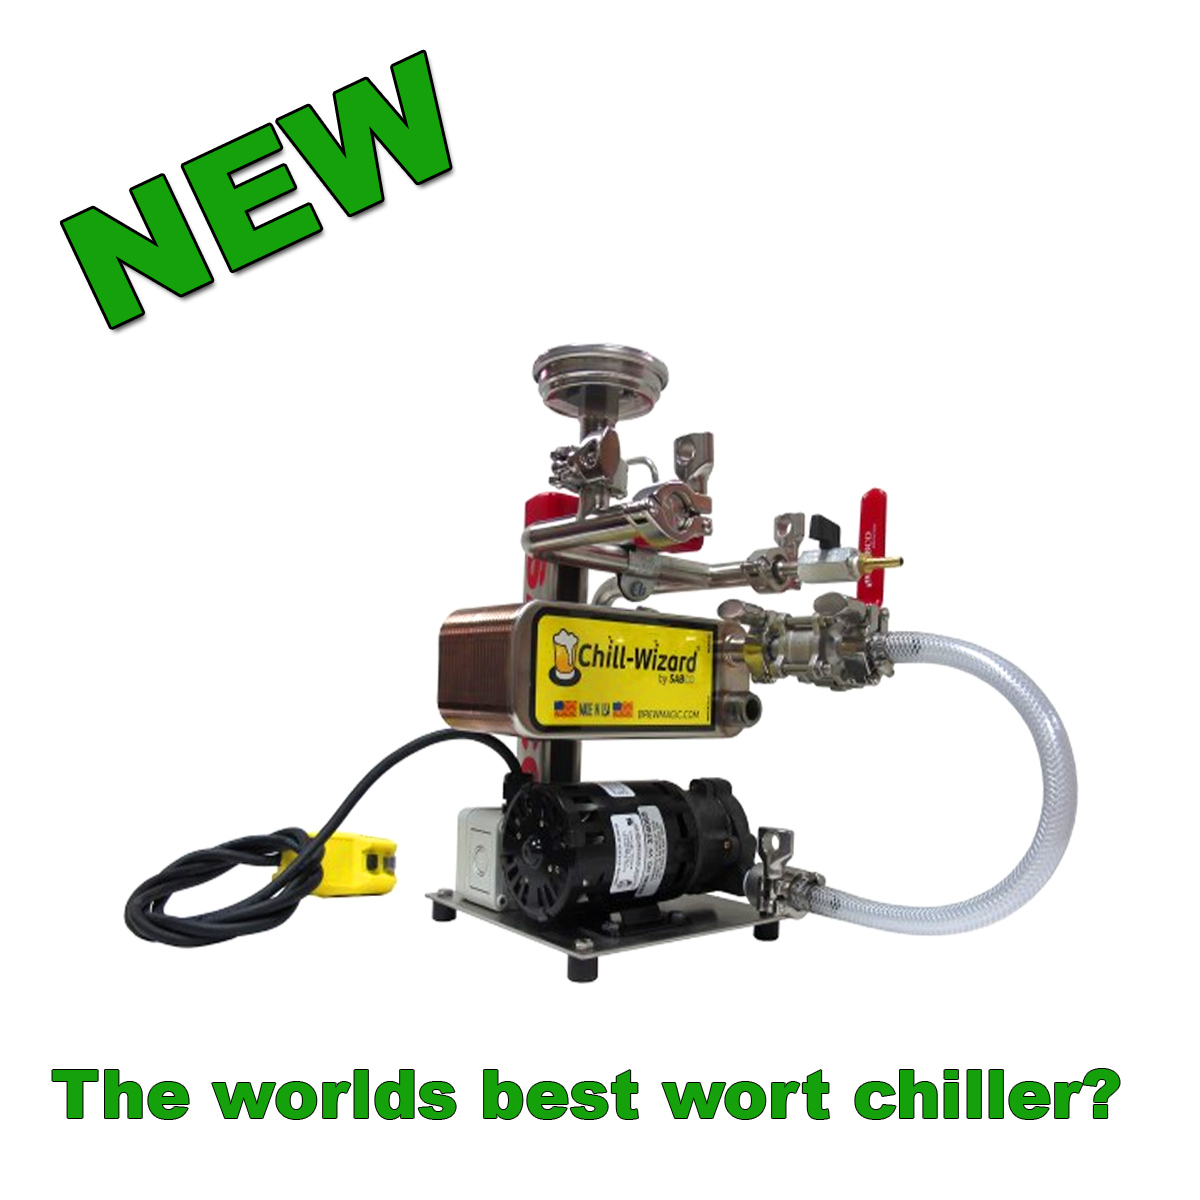 The Worlds Best Wort Chiller? Coupon Code